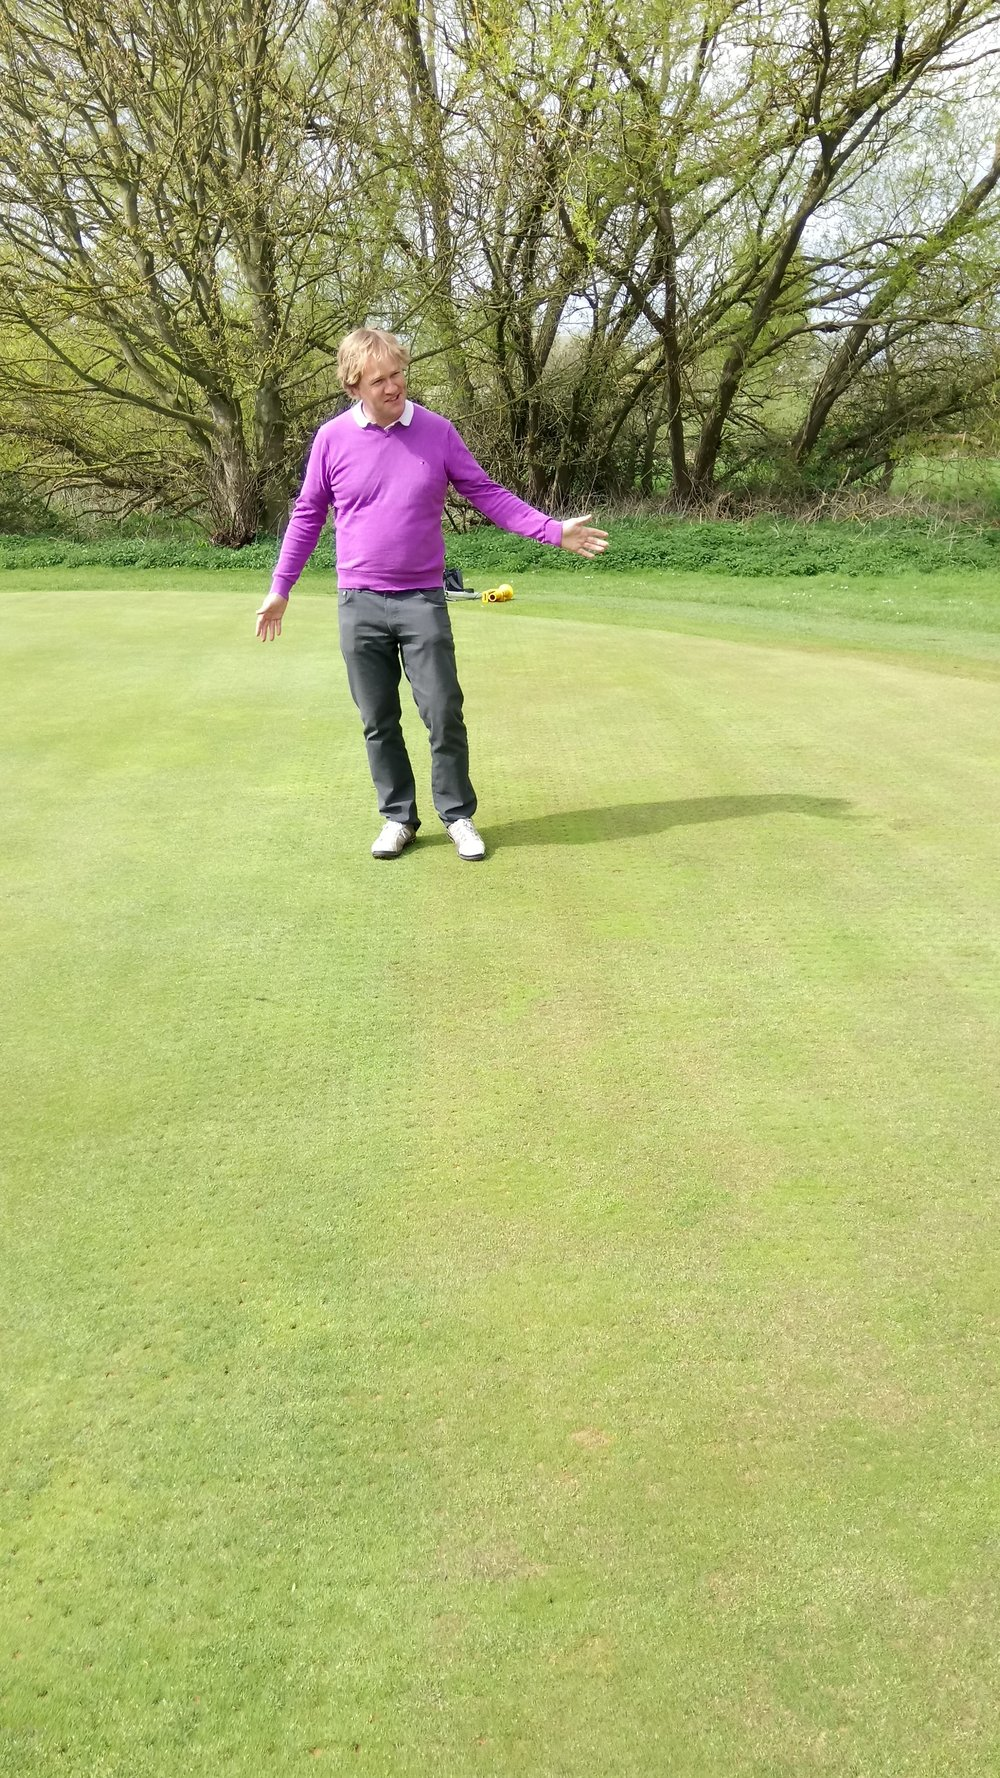 P Armitage assessing the Club's Rescue trial on the 8th green. The area where Philip is standing and to the right of where Philip is standing has been treated with Rescue, the course grasses have now discoulored and are stating to die, the bent grass applied before the Rescue was applied has already started to germinate. Philip was delighted with the success of the trial and has recommended that the Club applies Rescue to all of the greens during the annual greens maintenance week in August.